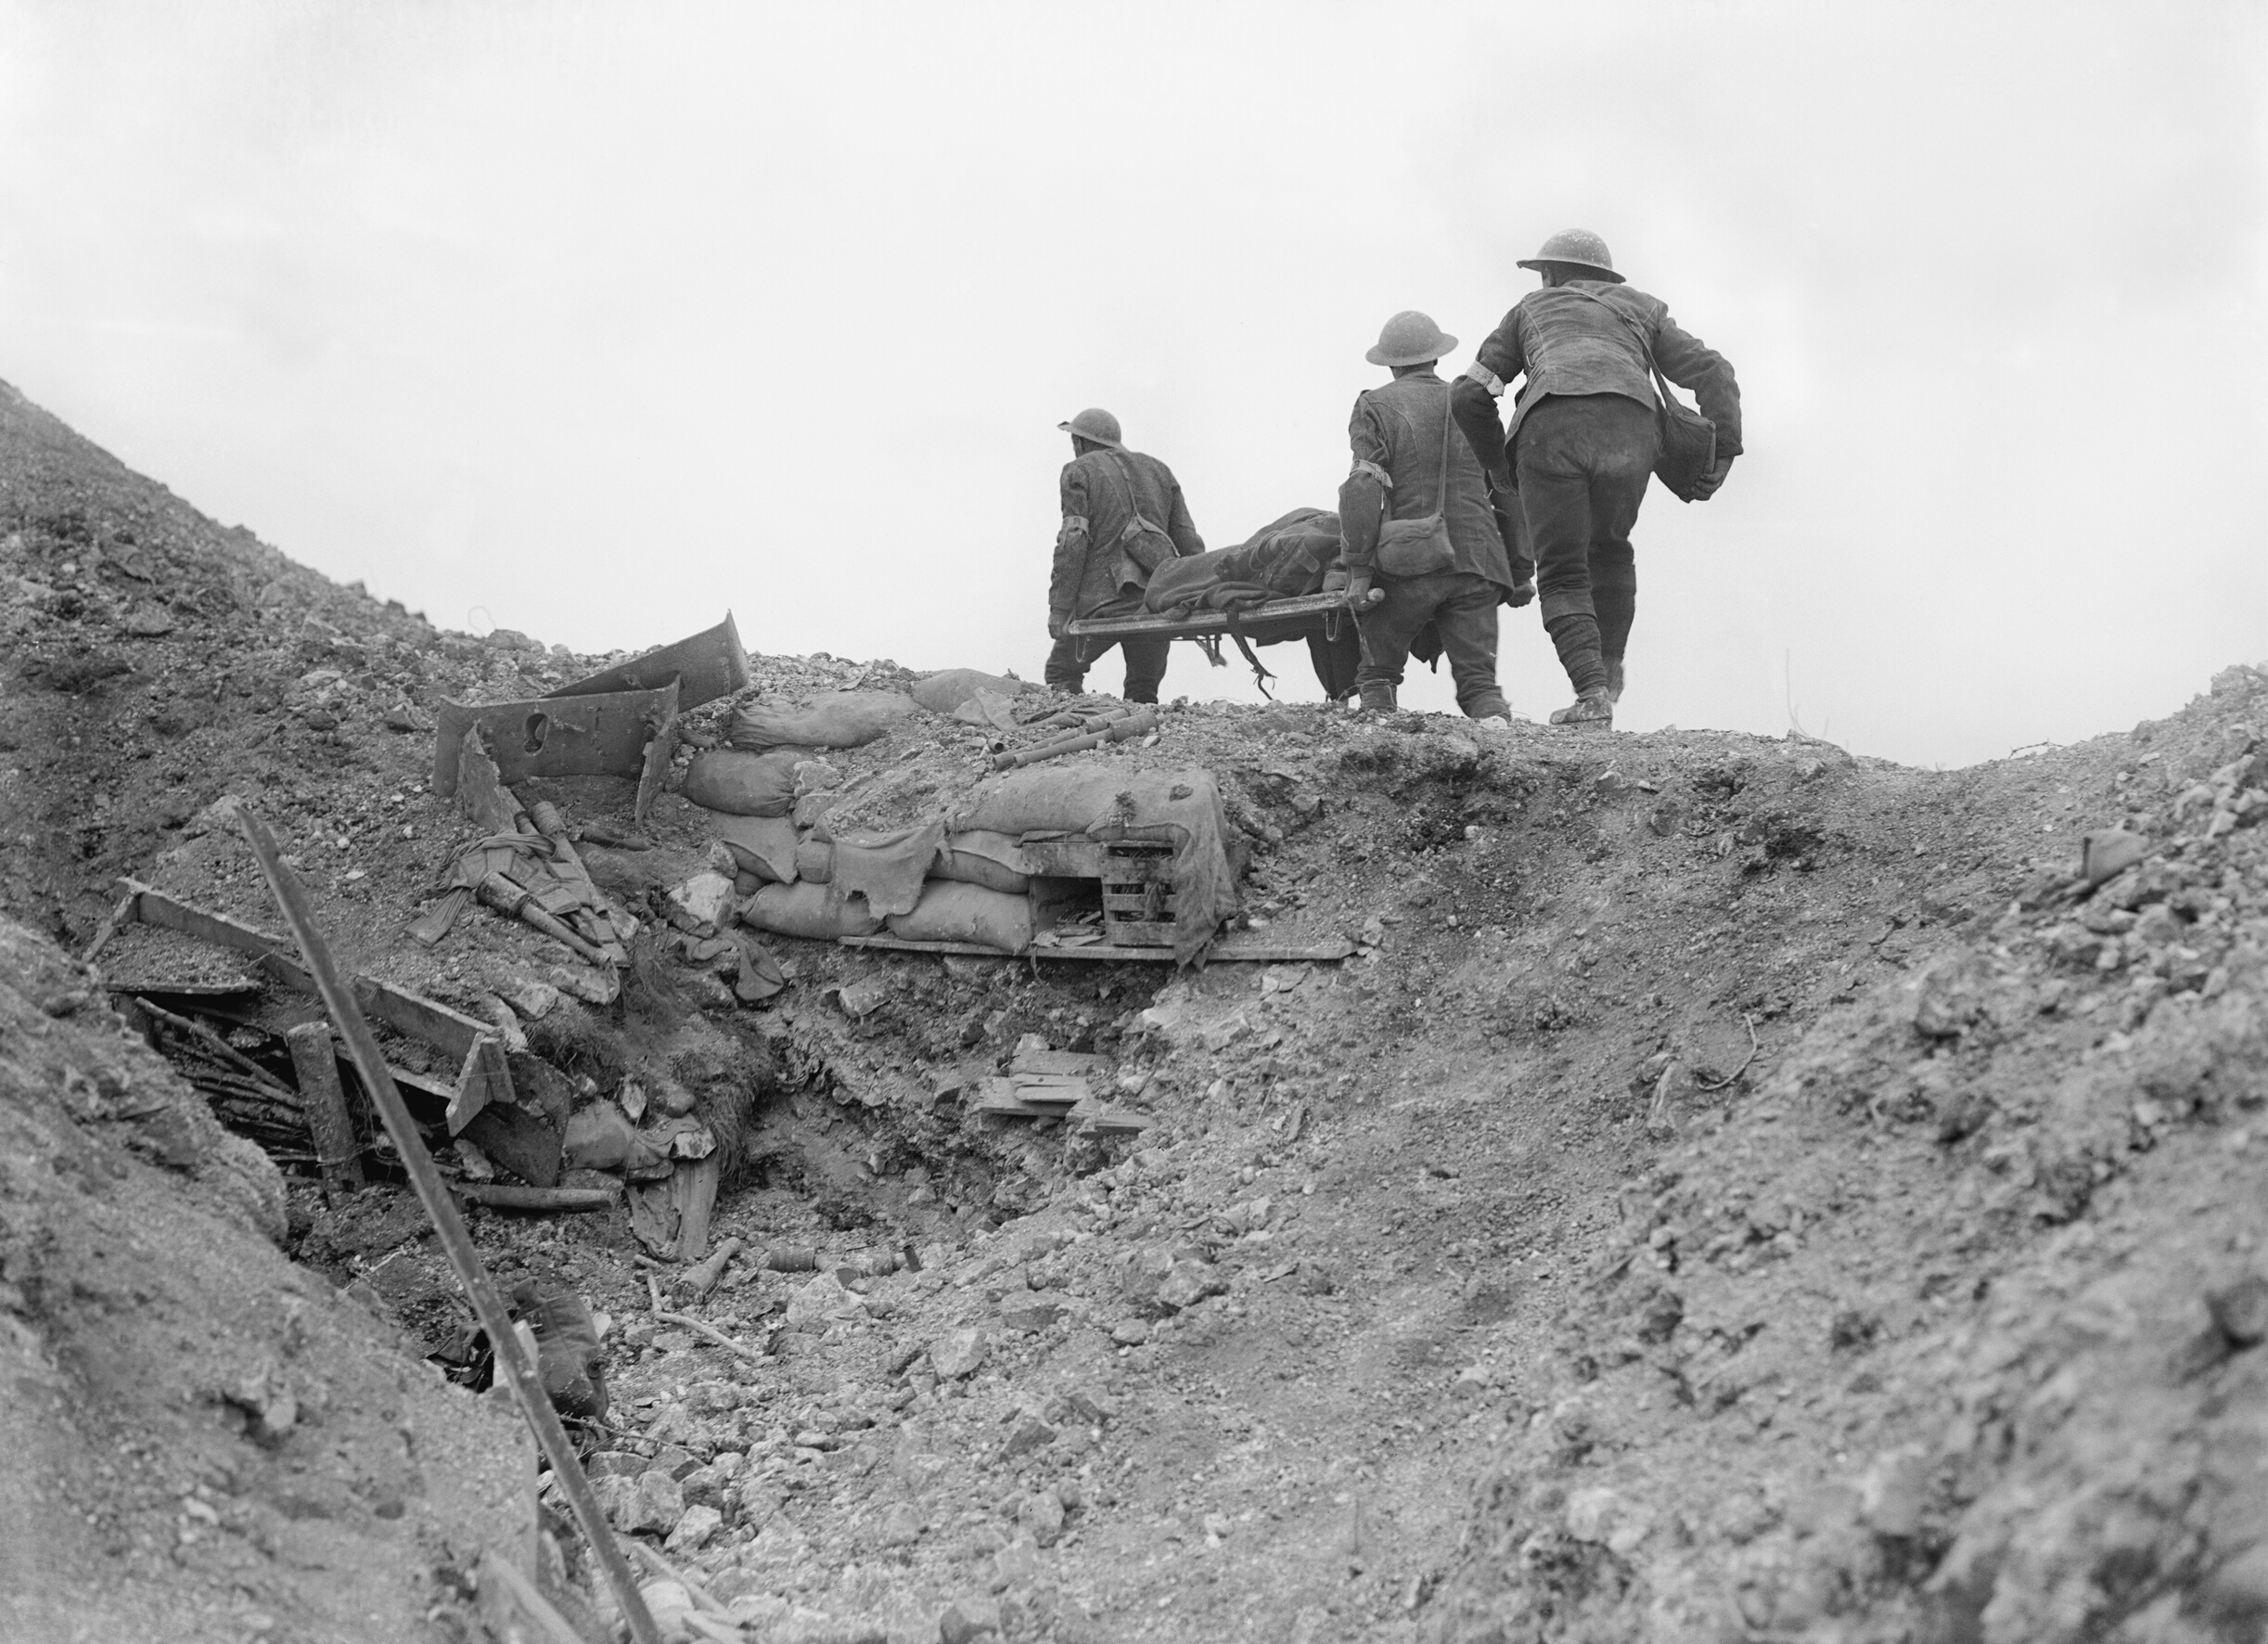 The Great War: July 1, 1916: The First Day of the Battle of the Somme